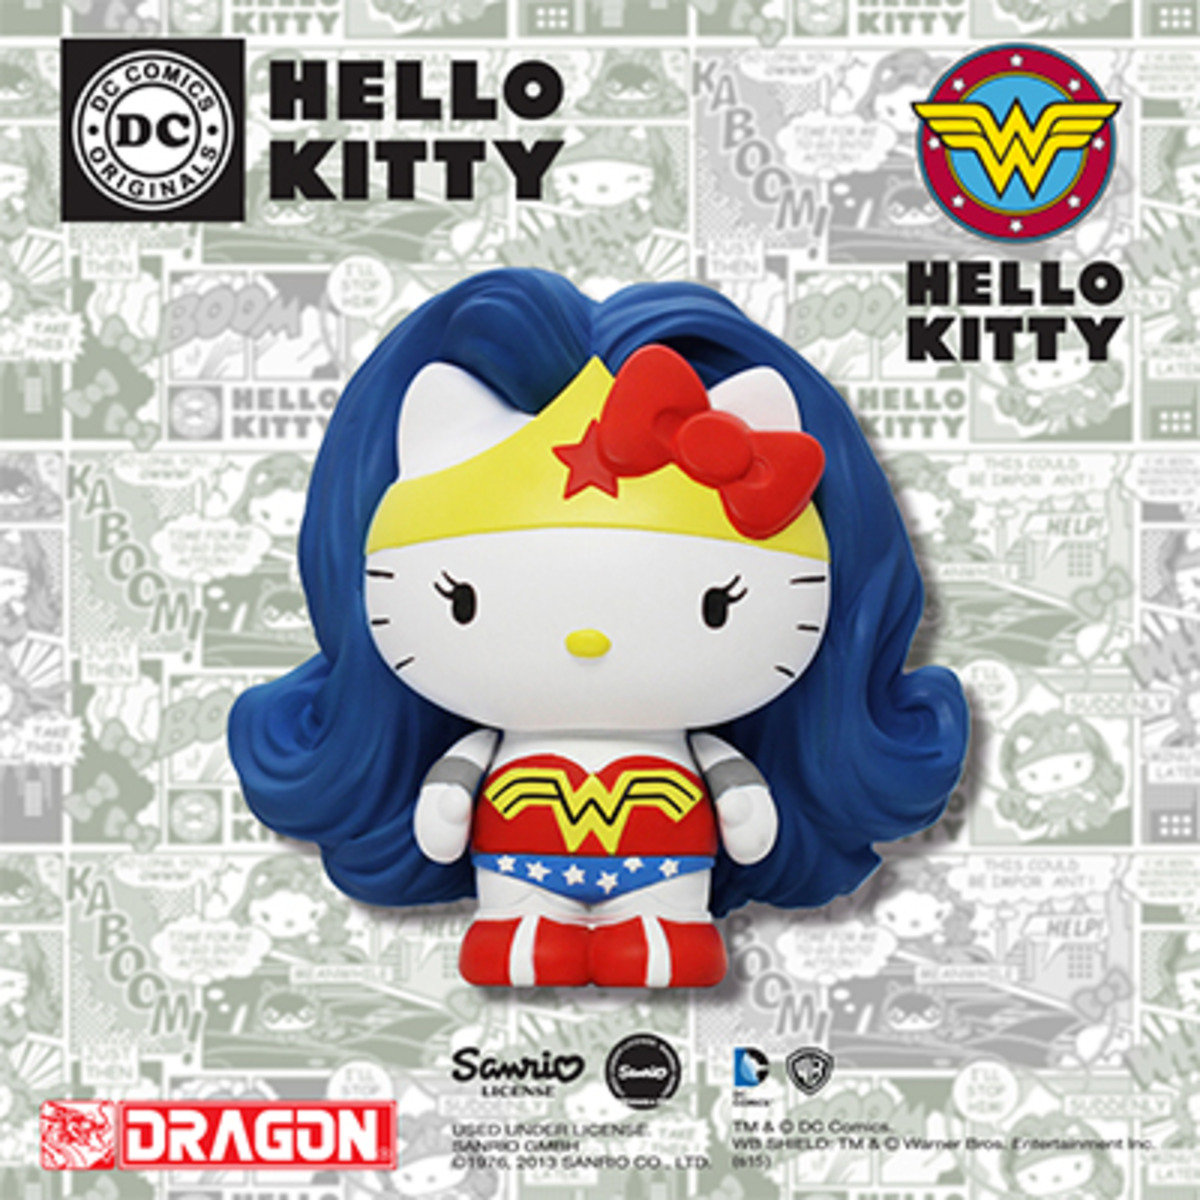 Hello Kitty x DC Comics系列 - 神奇女俠